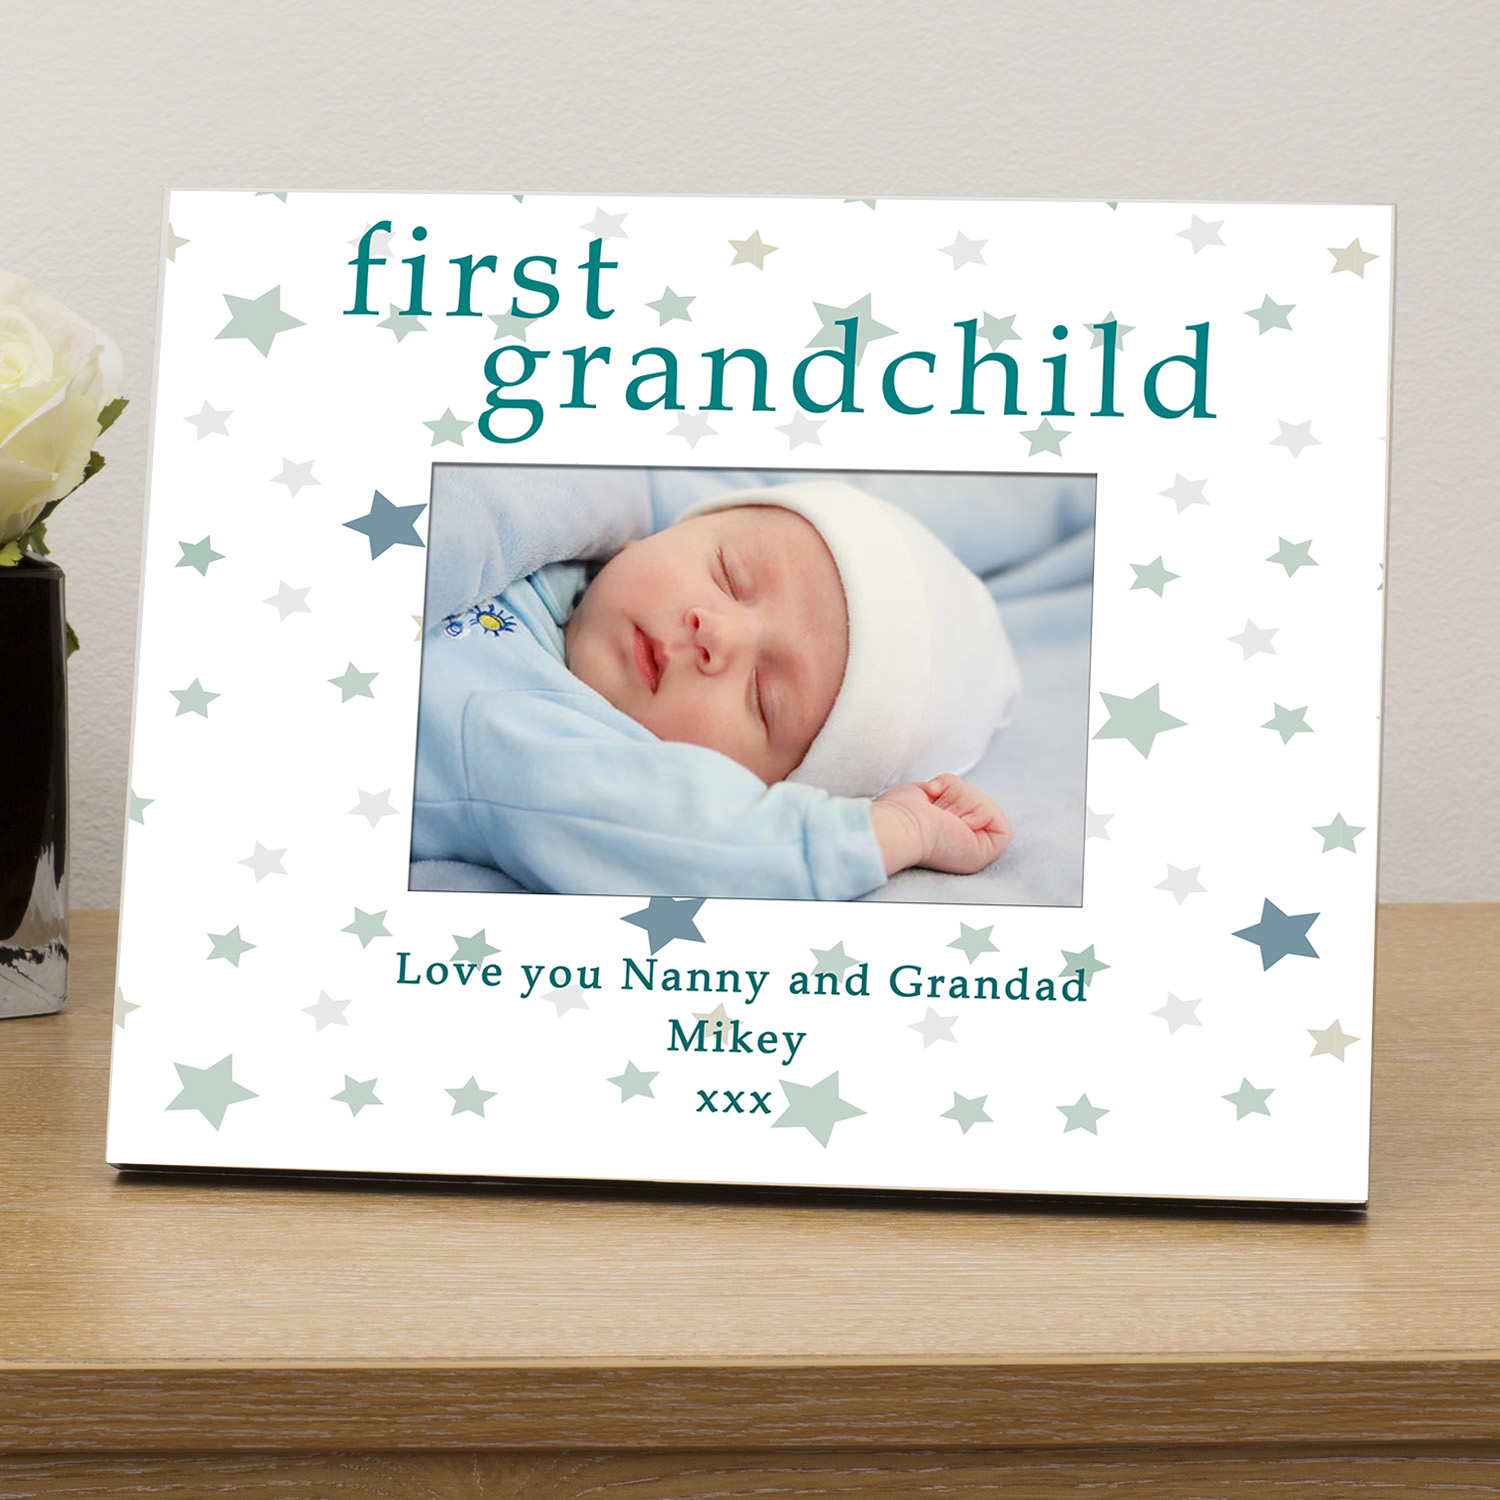 First grandchild personalised photo frame